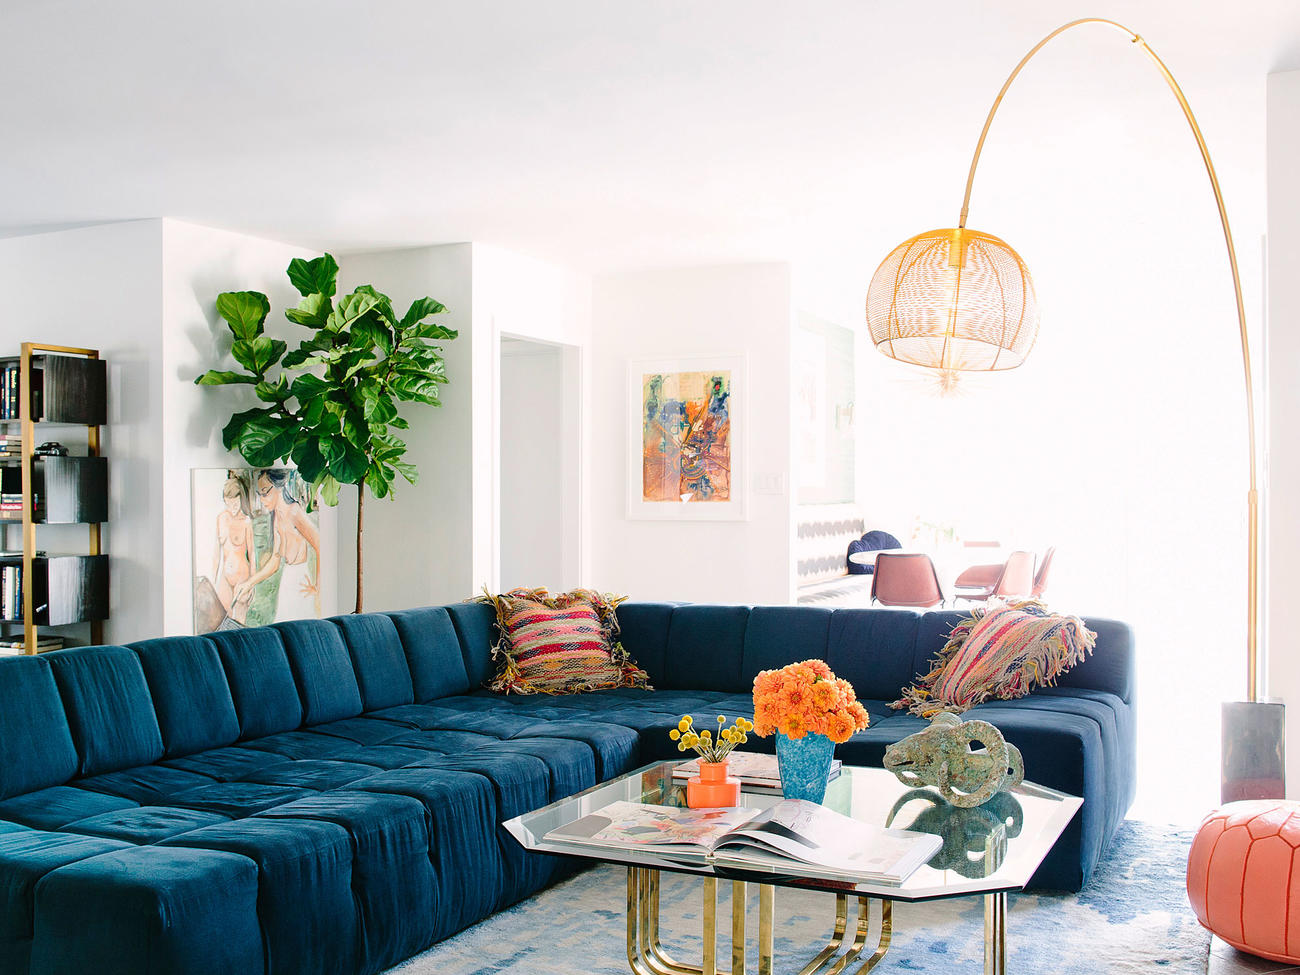 8 Bold Lessons from a Colorful Home